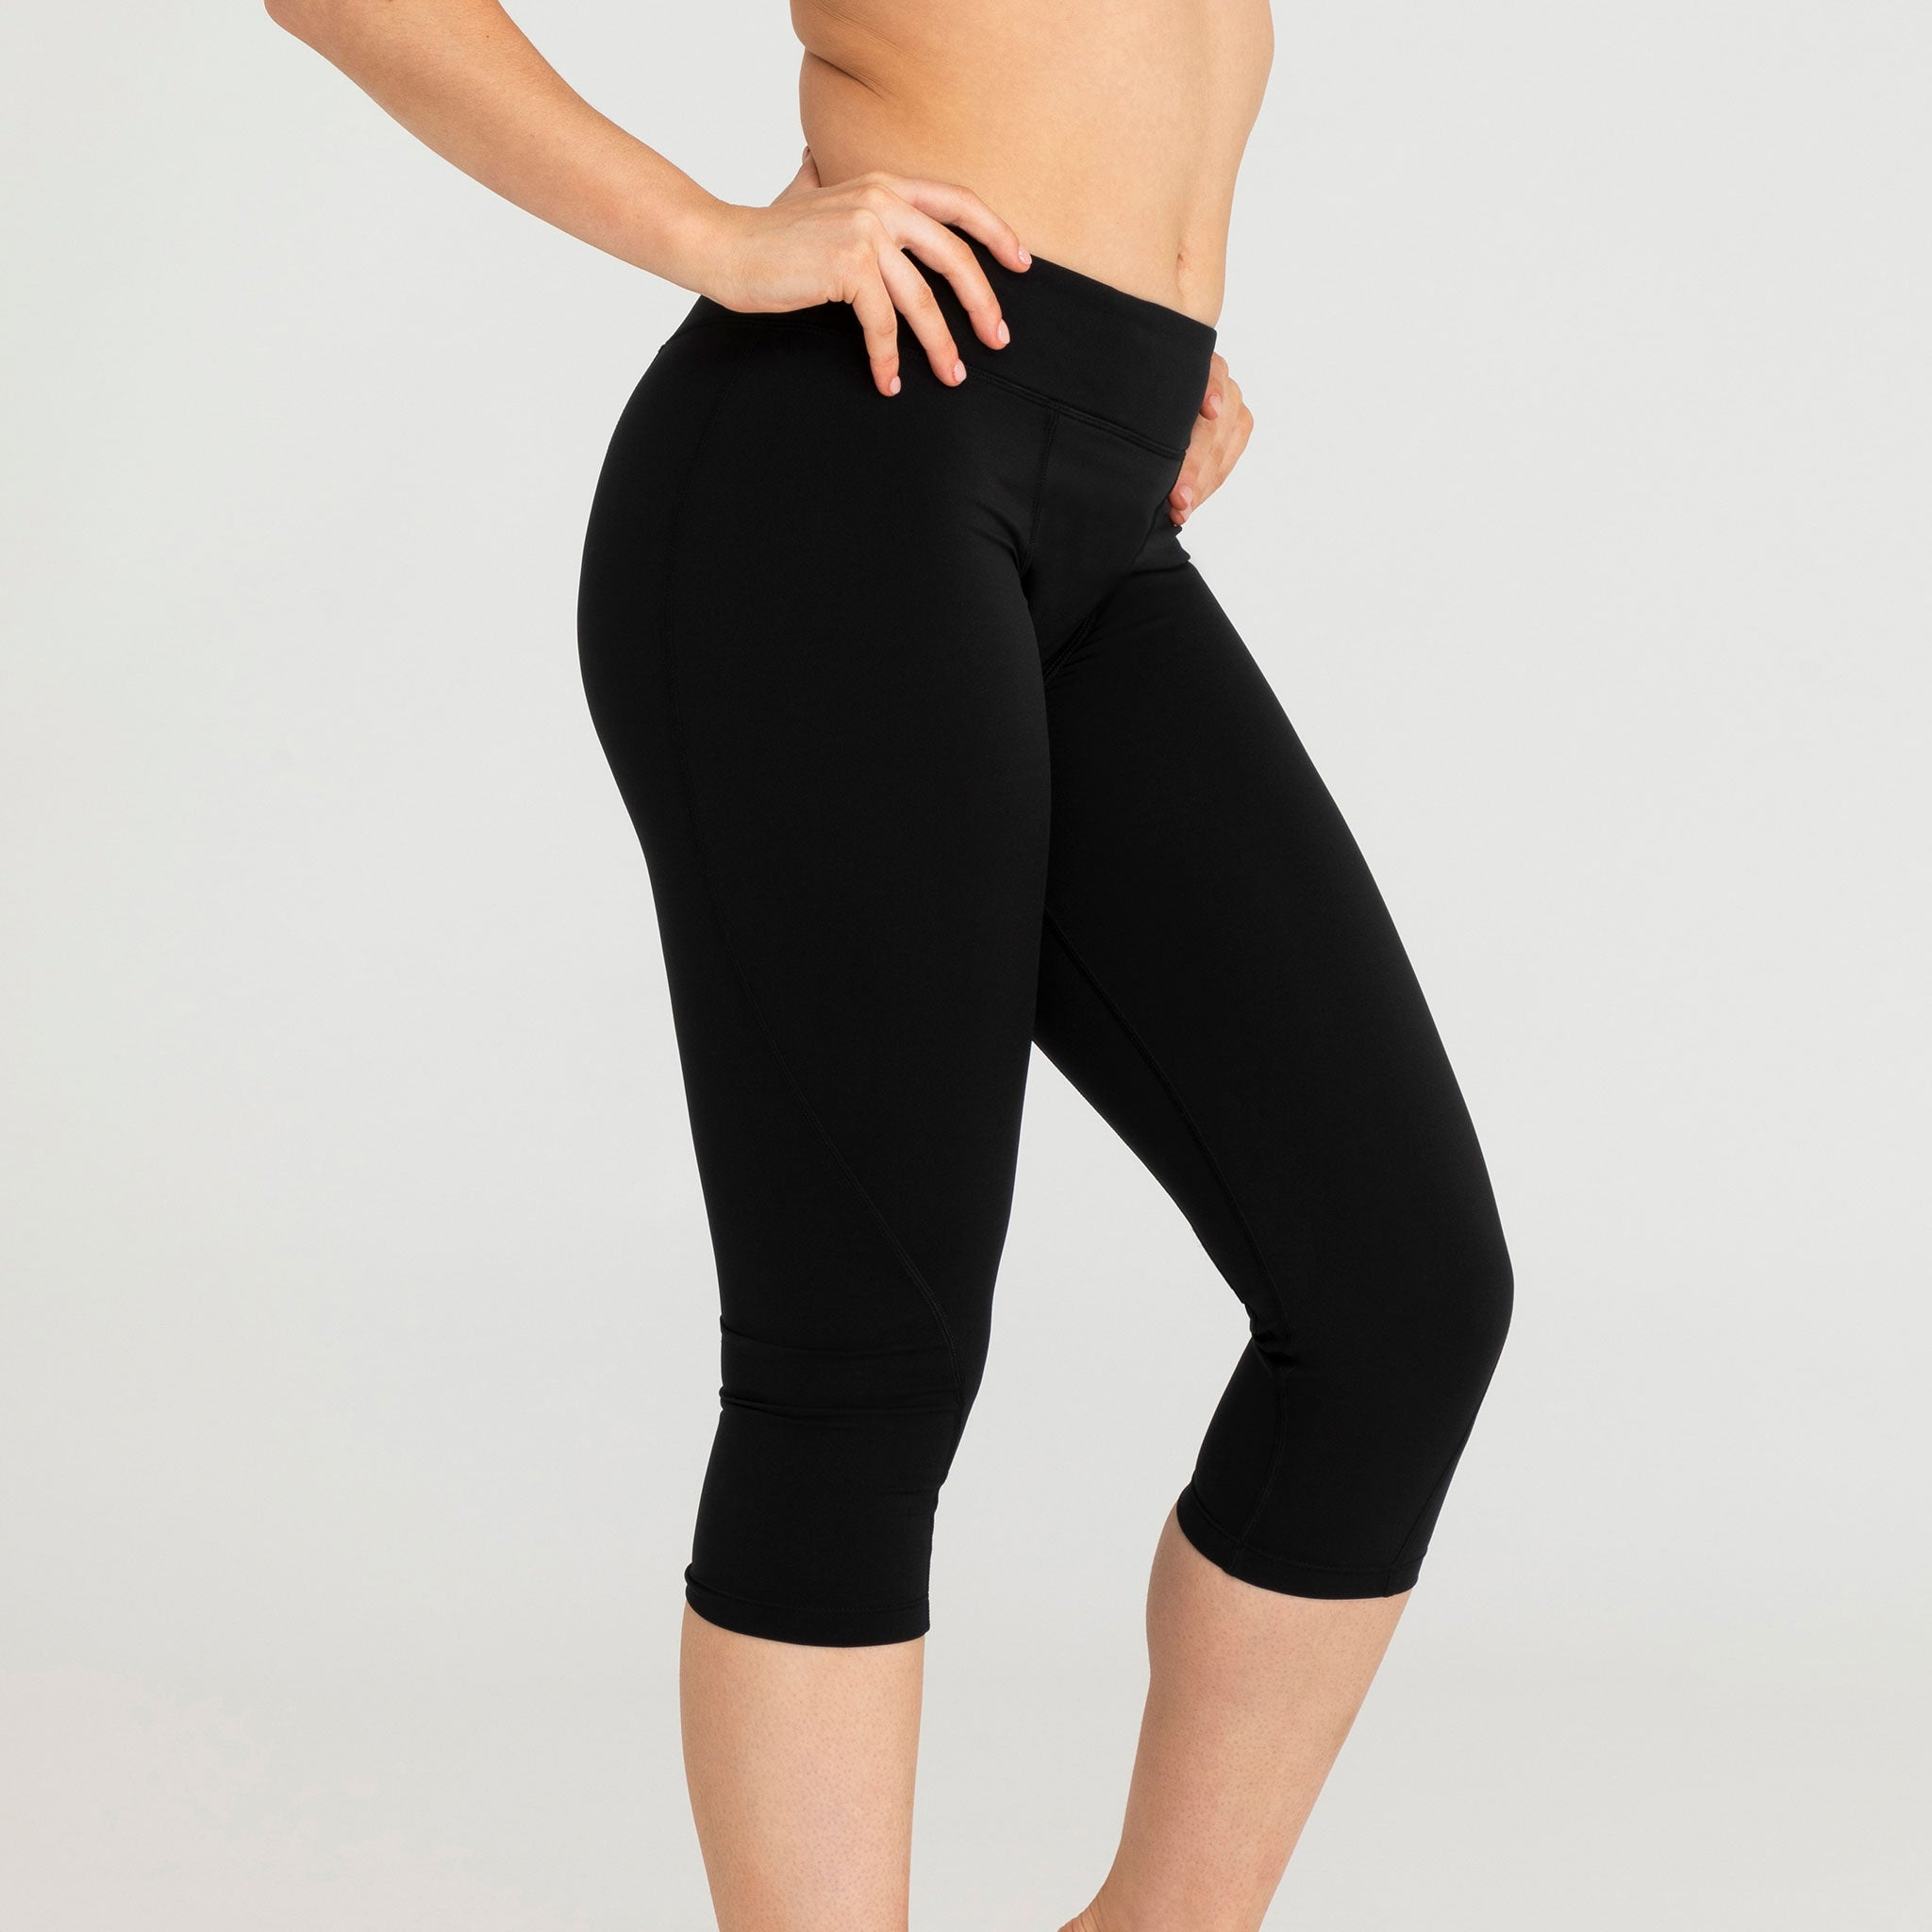 Modibodi Active Legging Black Light Moderate|ModelName: Rosaline 2XL/16AU